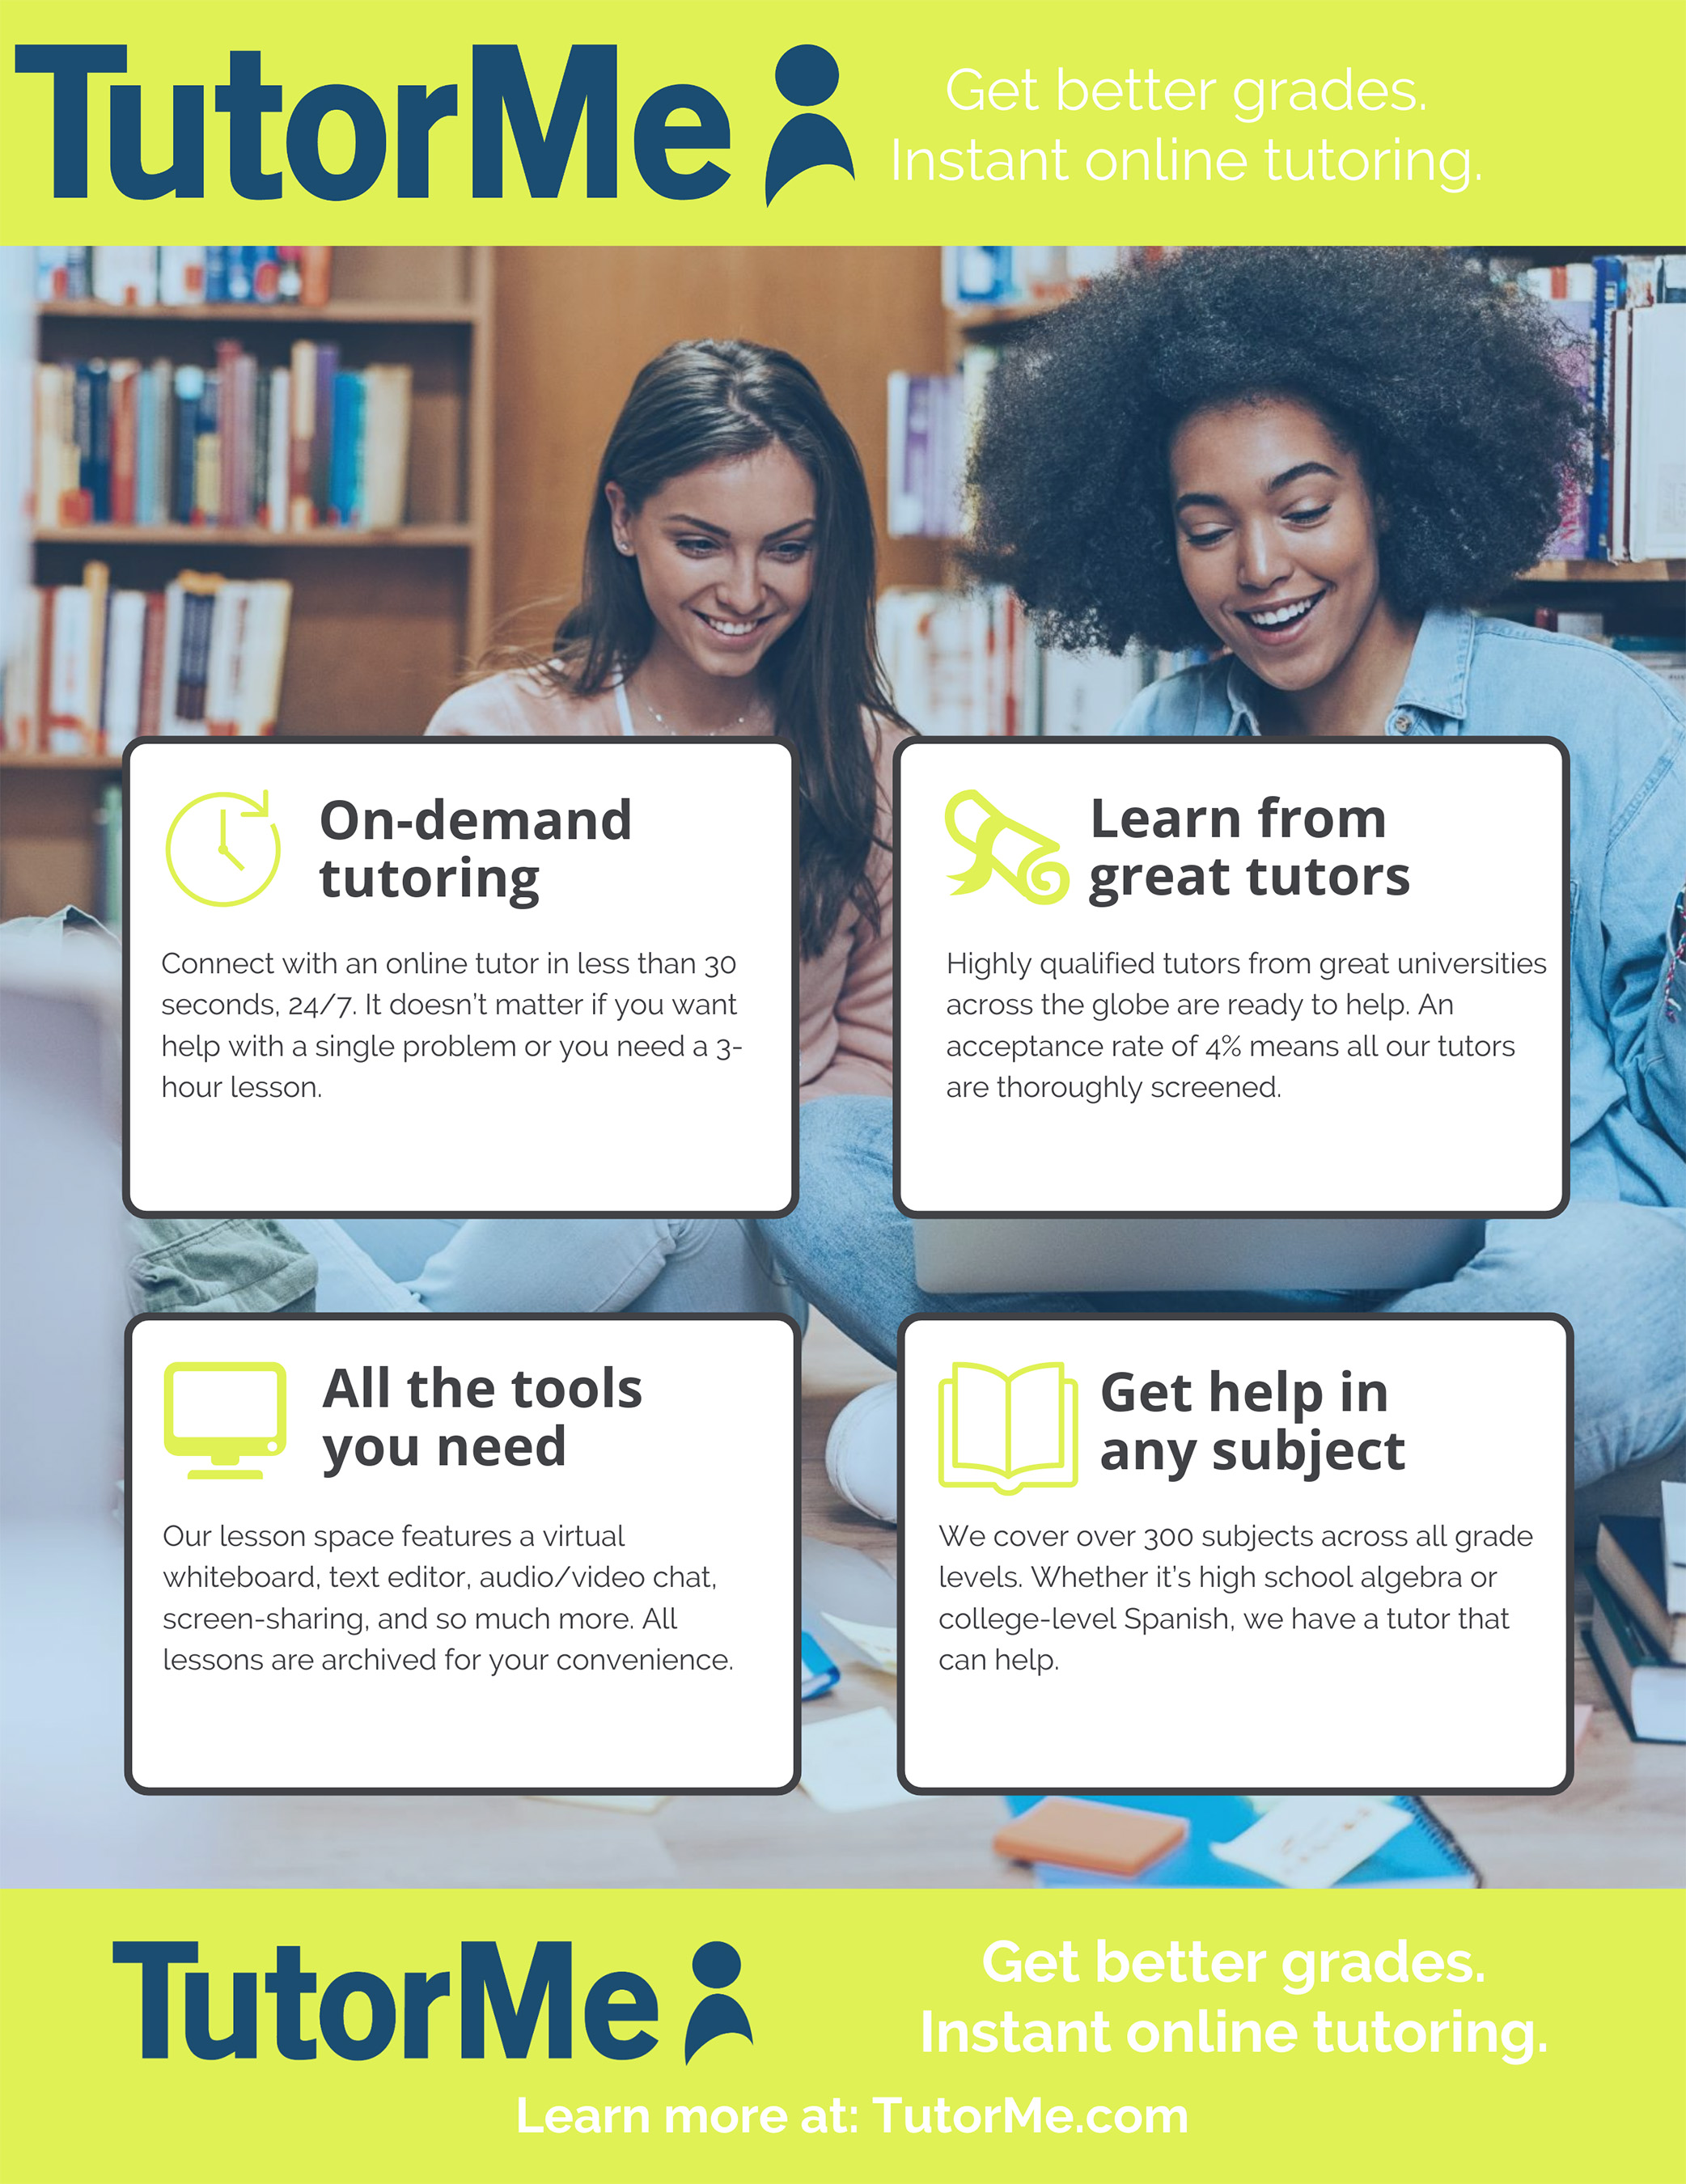 TutorMe is a revolutionary online education platform that provides on-demand tutoring and online courses. We believe there are more teachers in the world than are actually teaching so we want to empower more people to learn from each other.